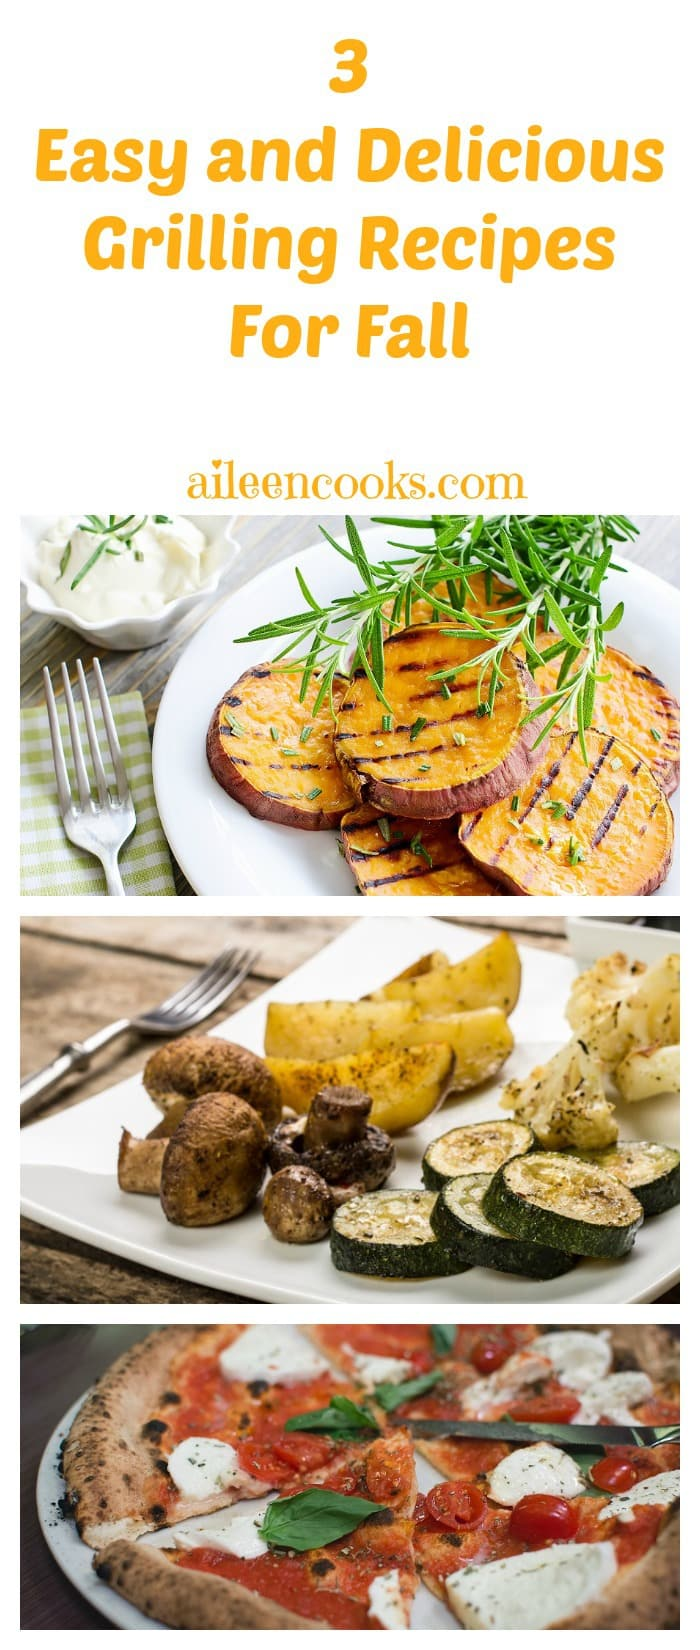 Fall Grilling Recipes from aileencooks.com